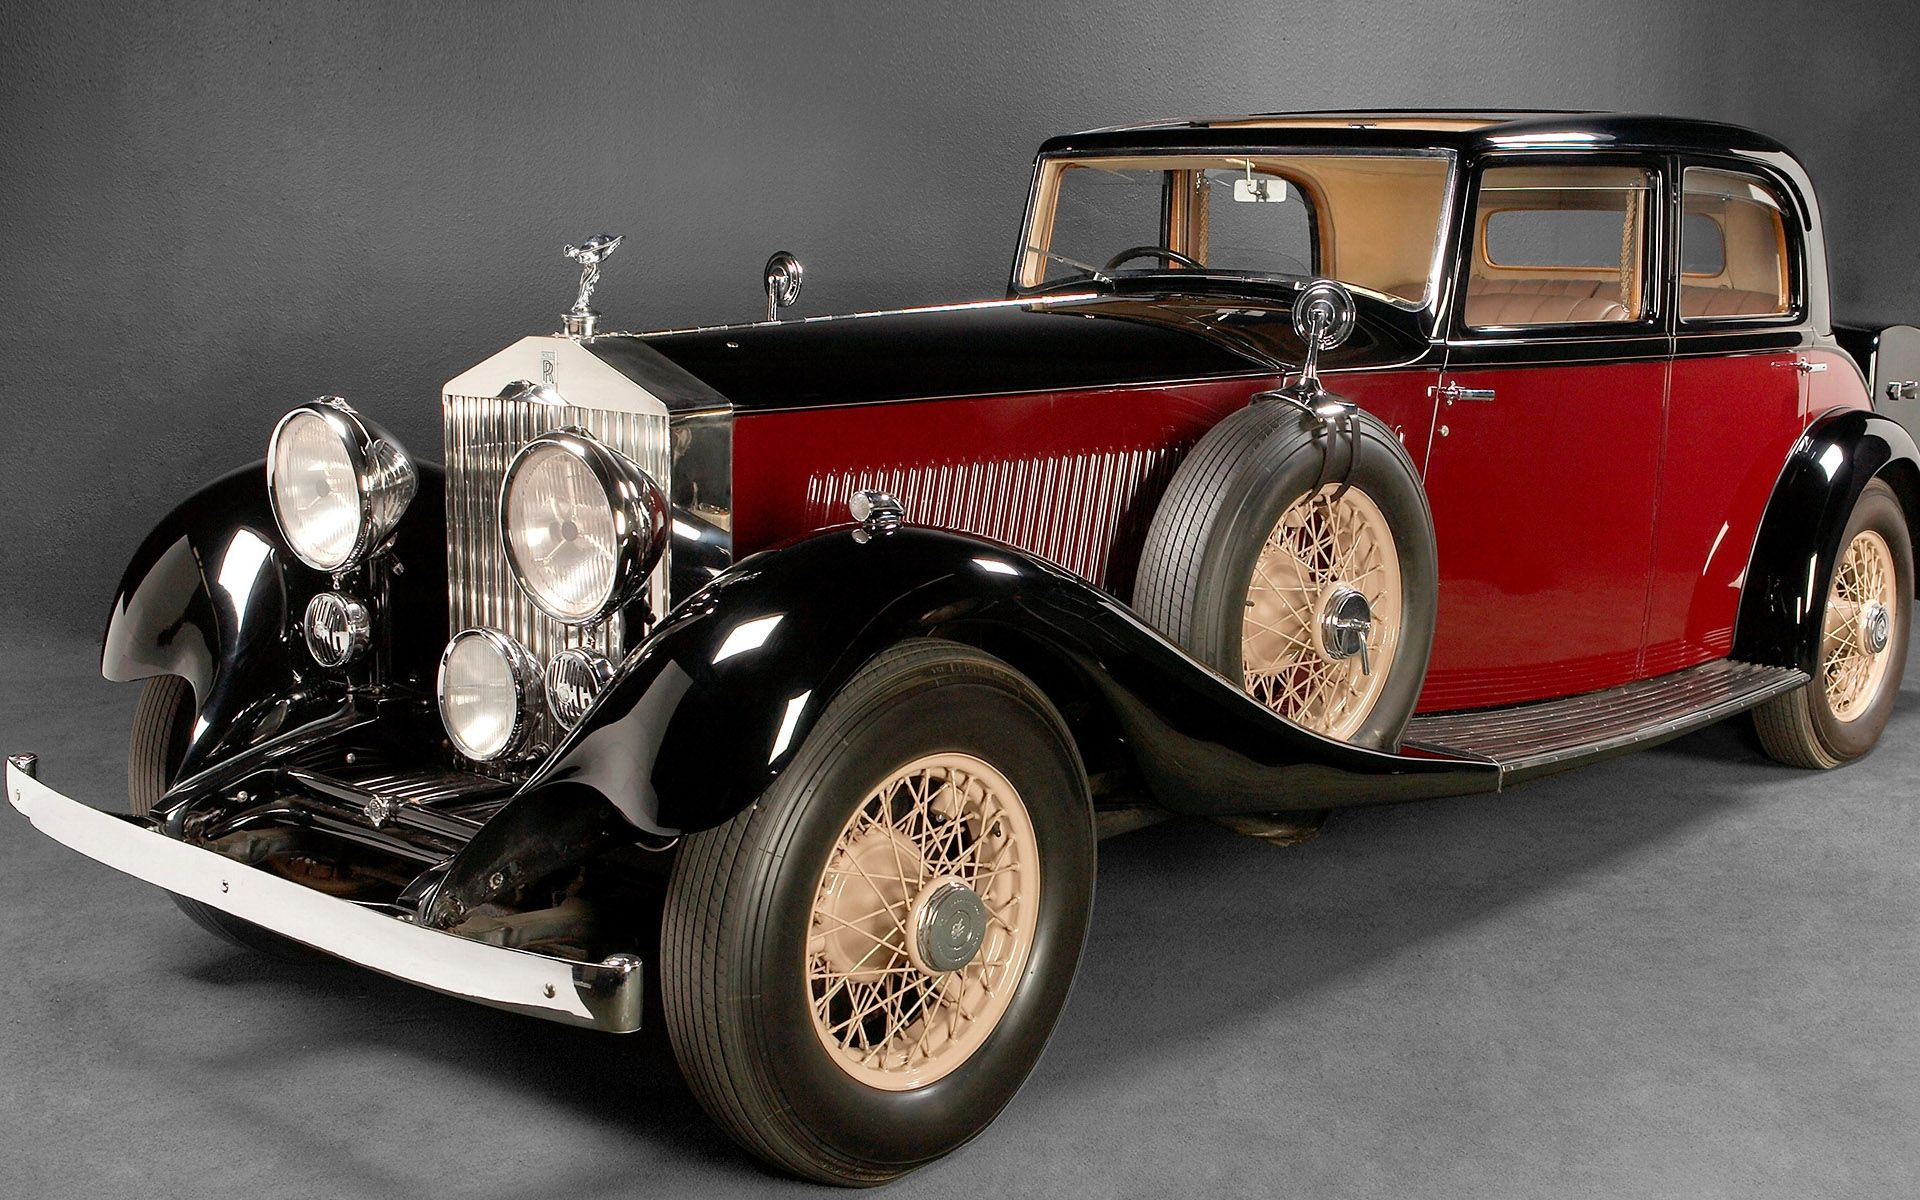 The Rolls Royce Silver Ghost is the most expensive car ever insured ...